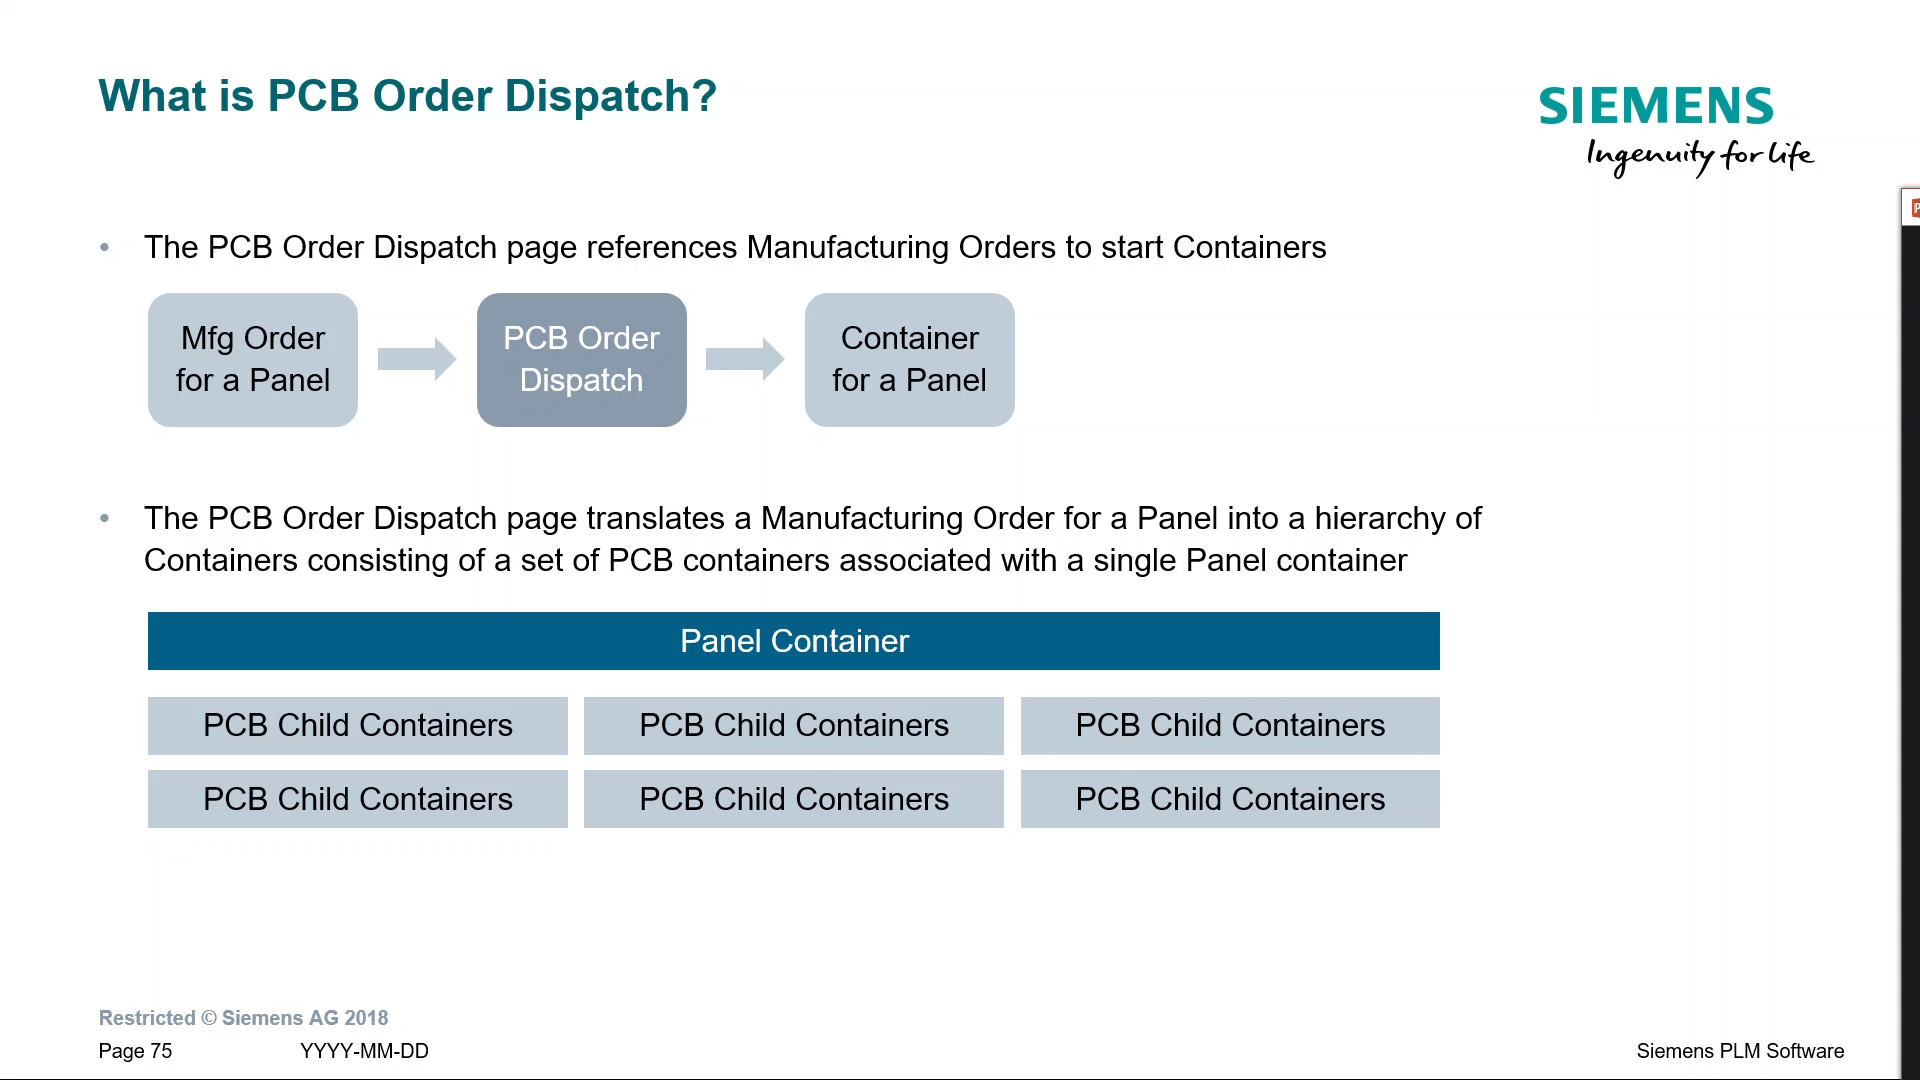 Define the purpose and key modeling relationships of the PCB Order Dispatch page cover image